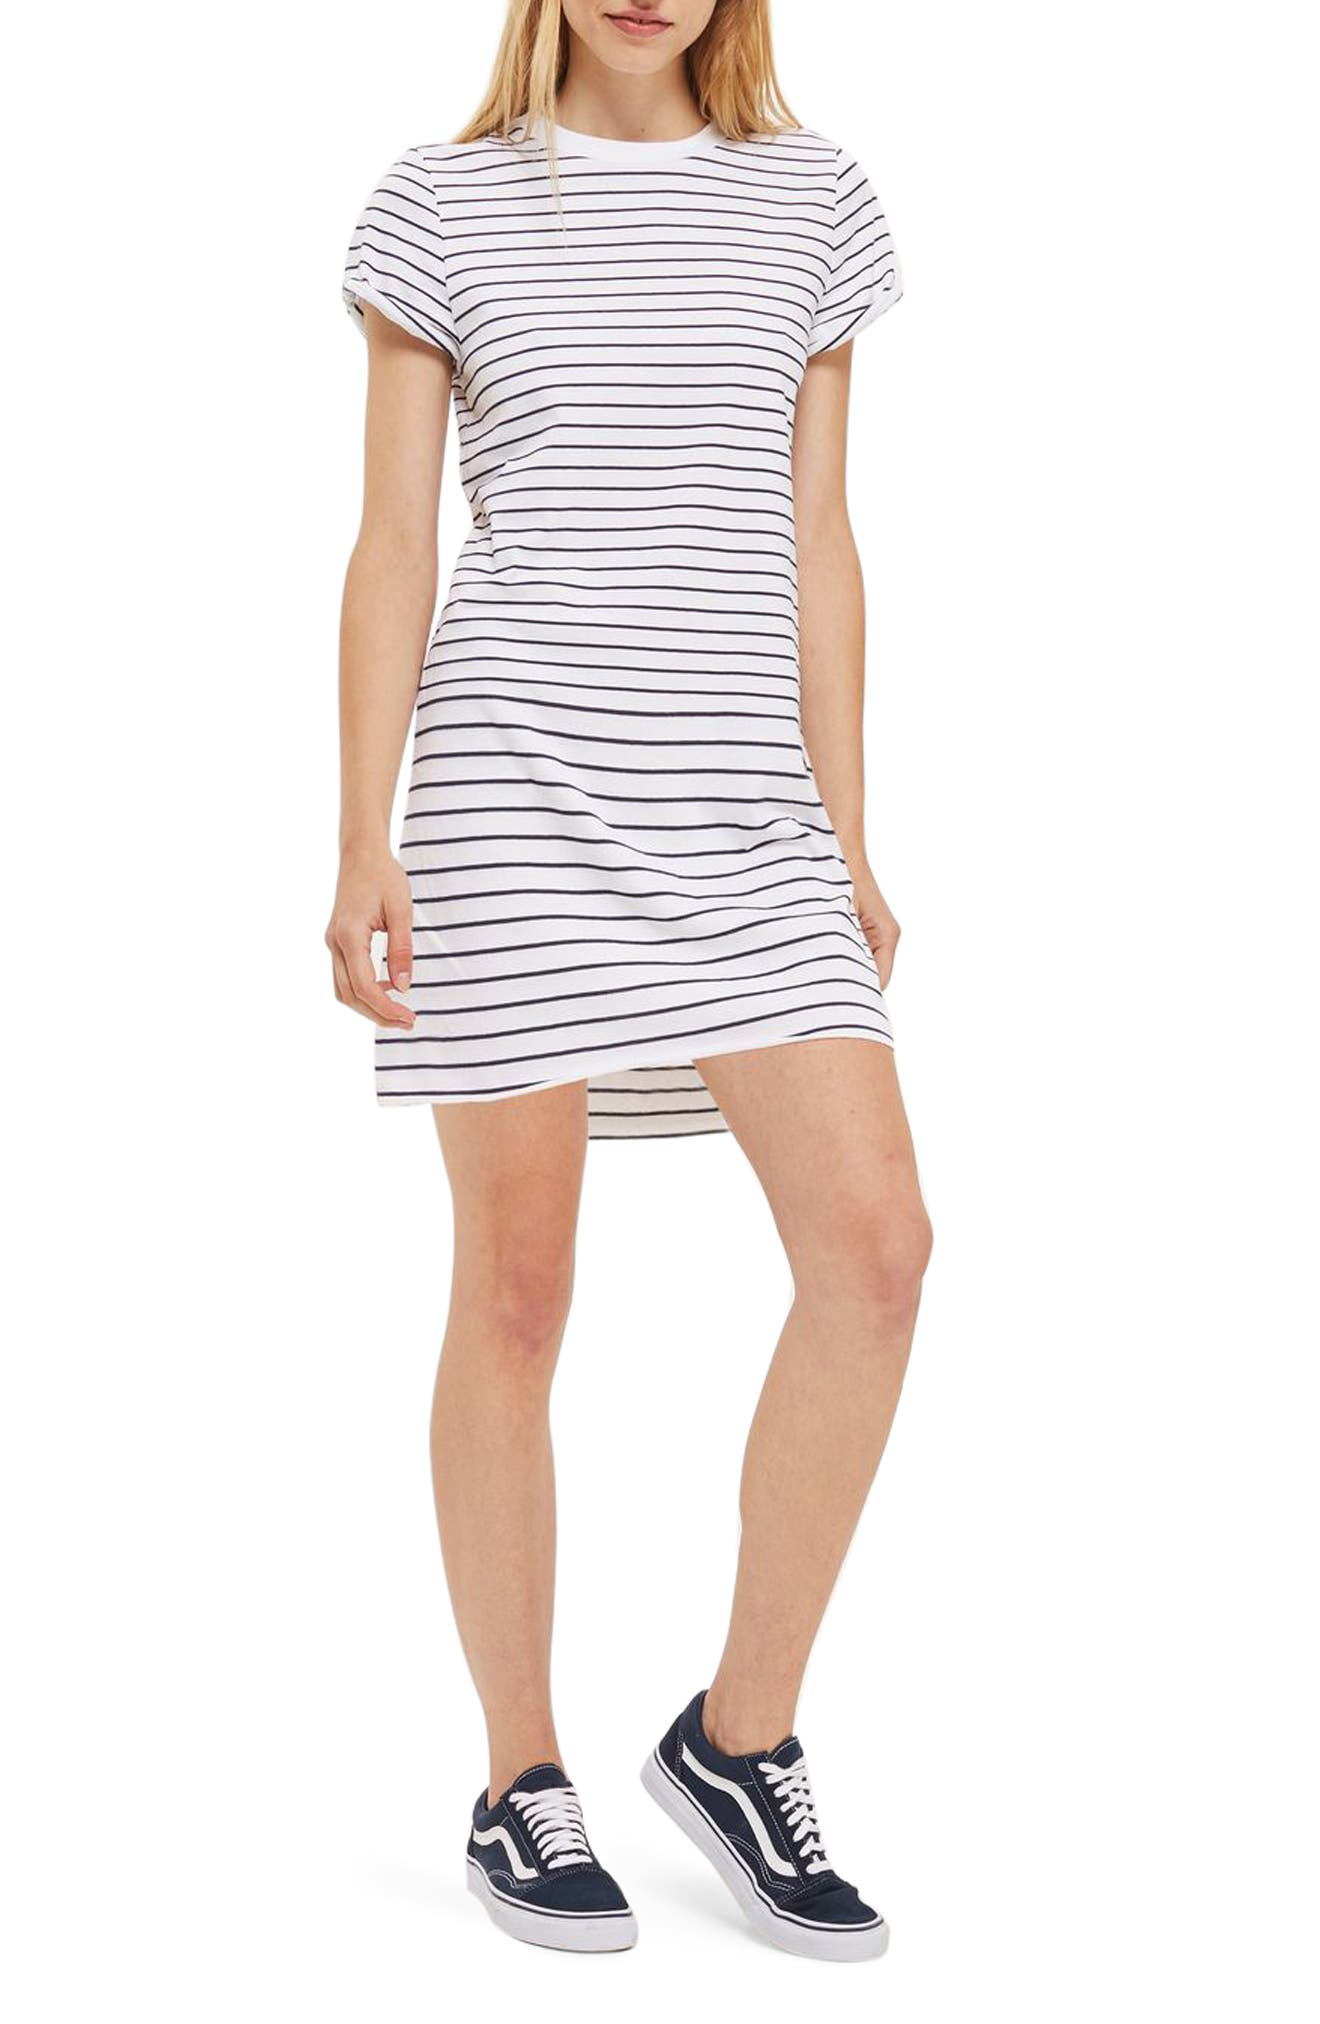 Topshop Stripe Roll Sleeve T-Shirt Dress (Petite)